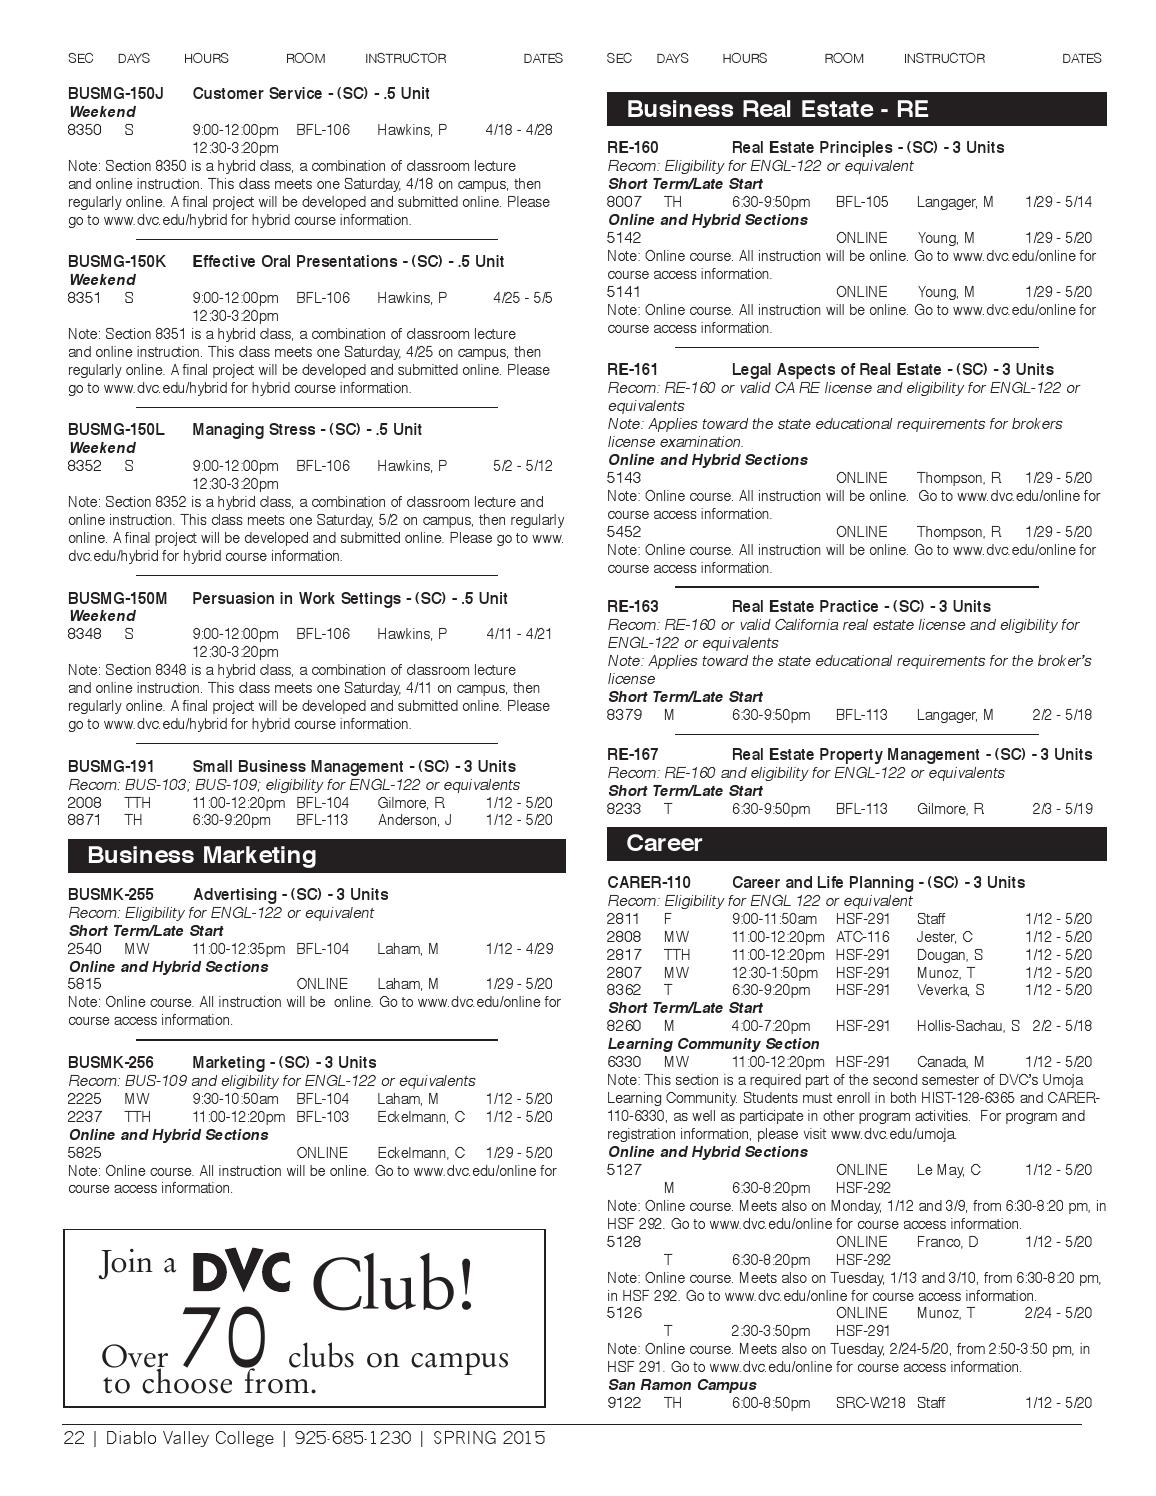 DVC Spring 2015 Class Schedule by Diablo Valley College - issuu